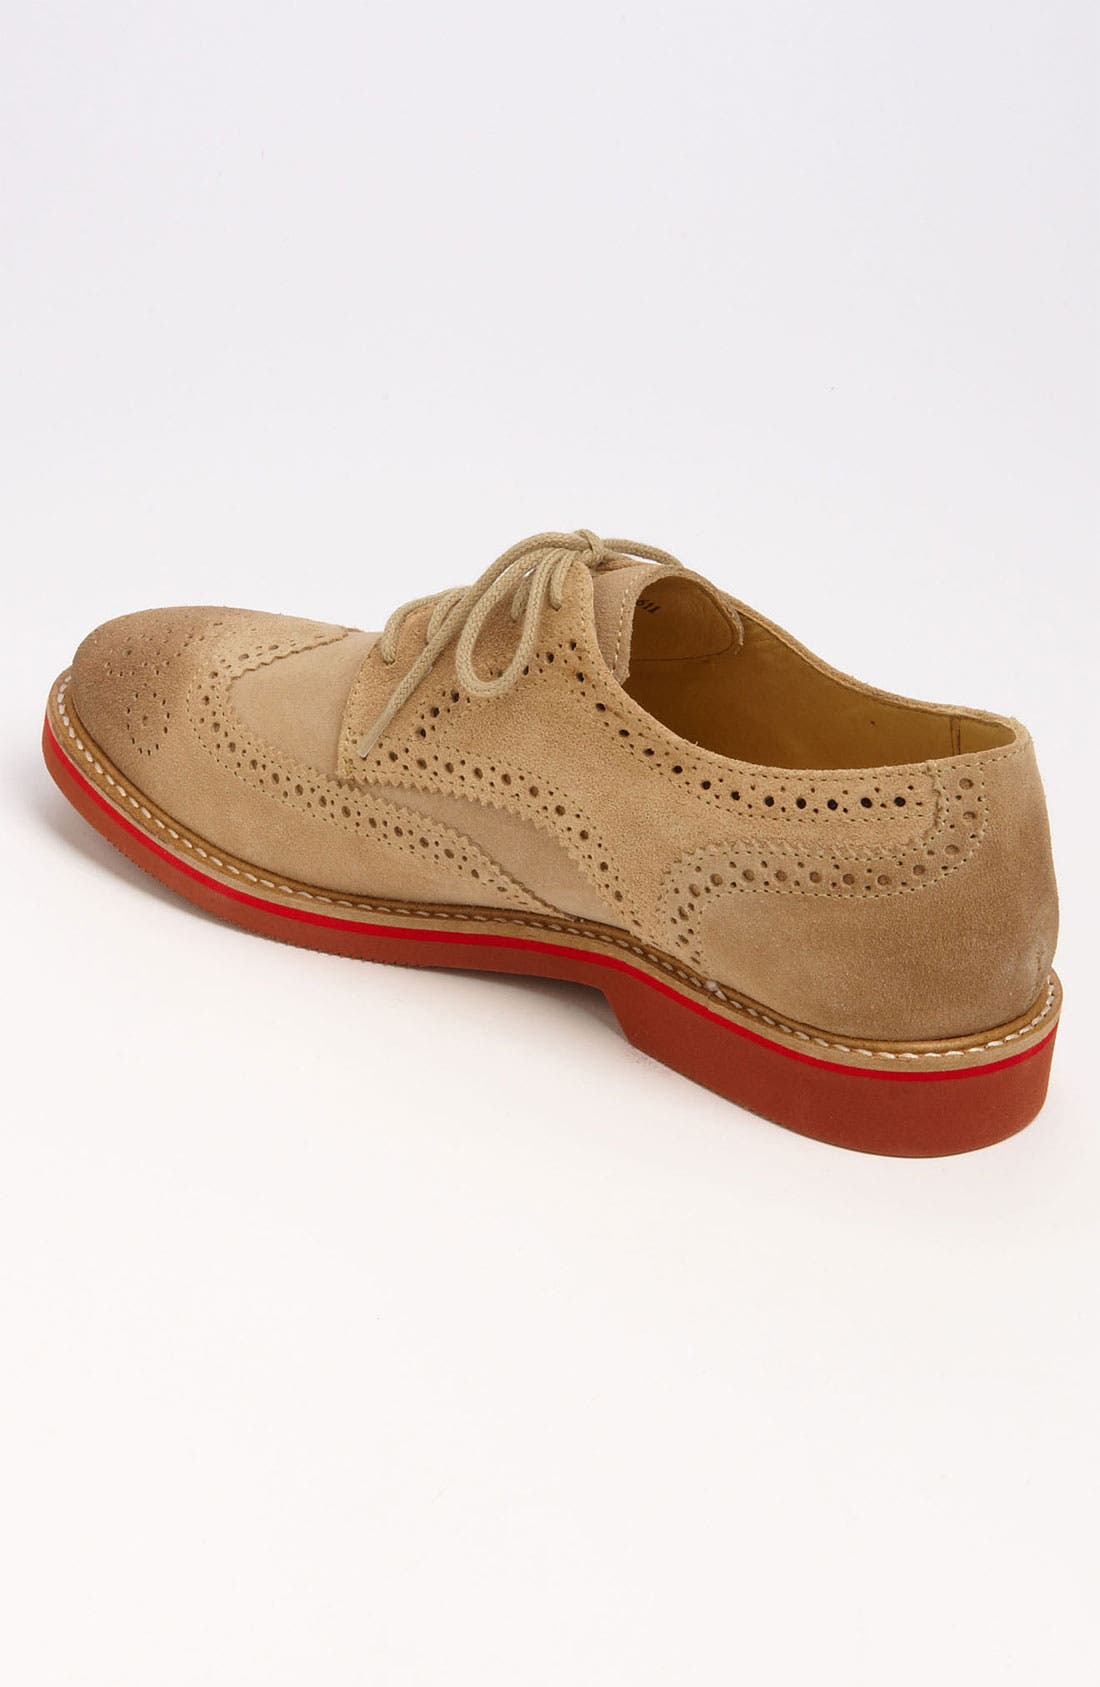 Alternate Image 2  - 1901 'Wing It' Suede Oxford